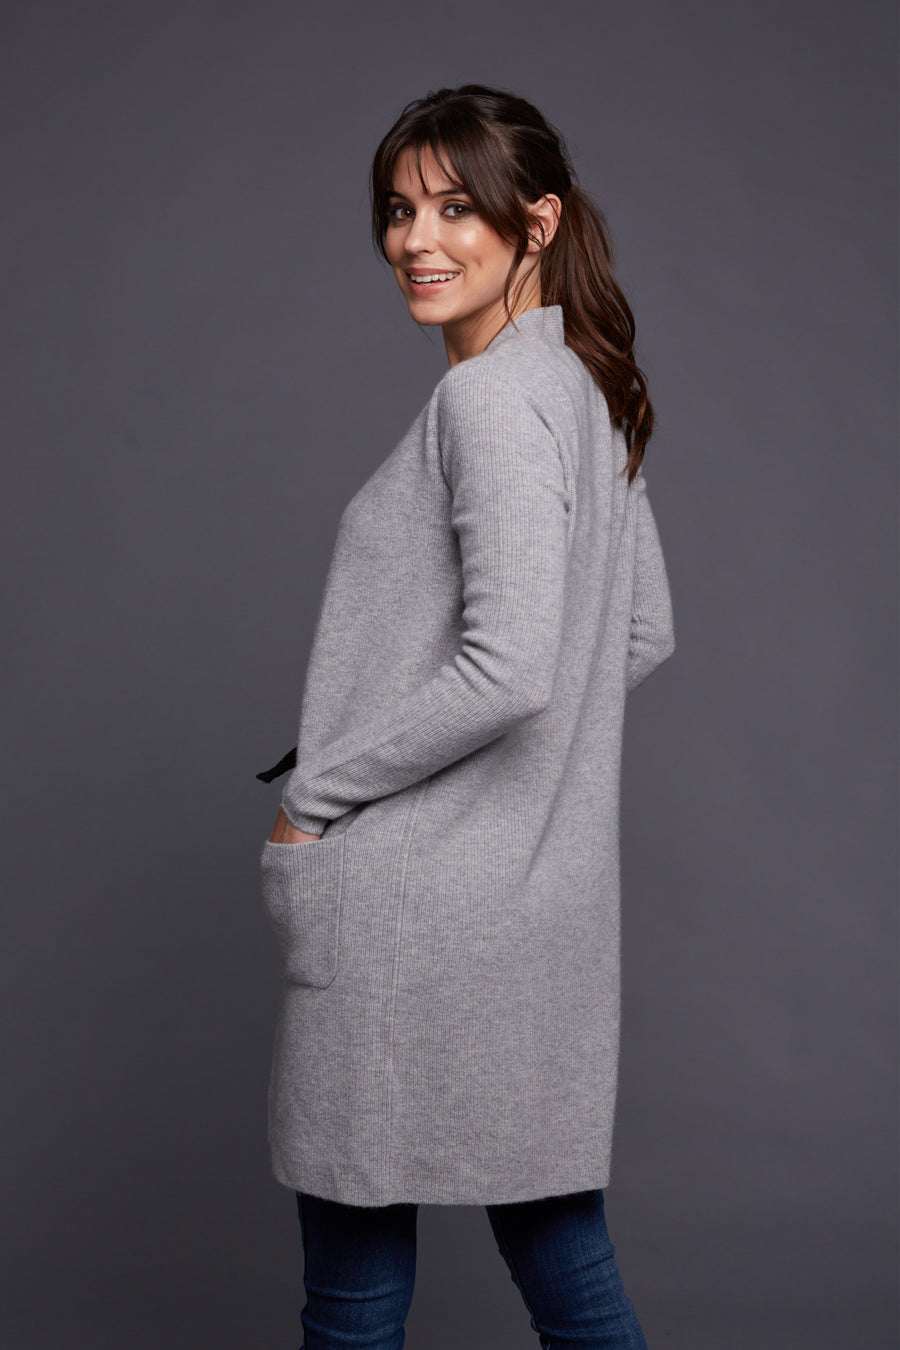 pine cashmere morgan women's 100% pure cashmere cardigan sweater in grey